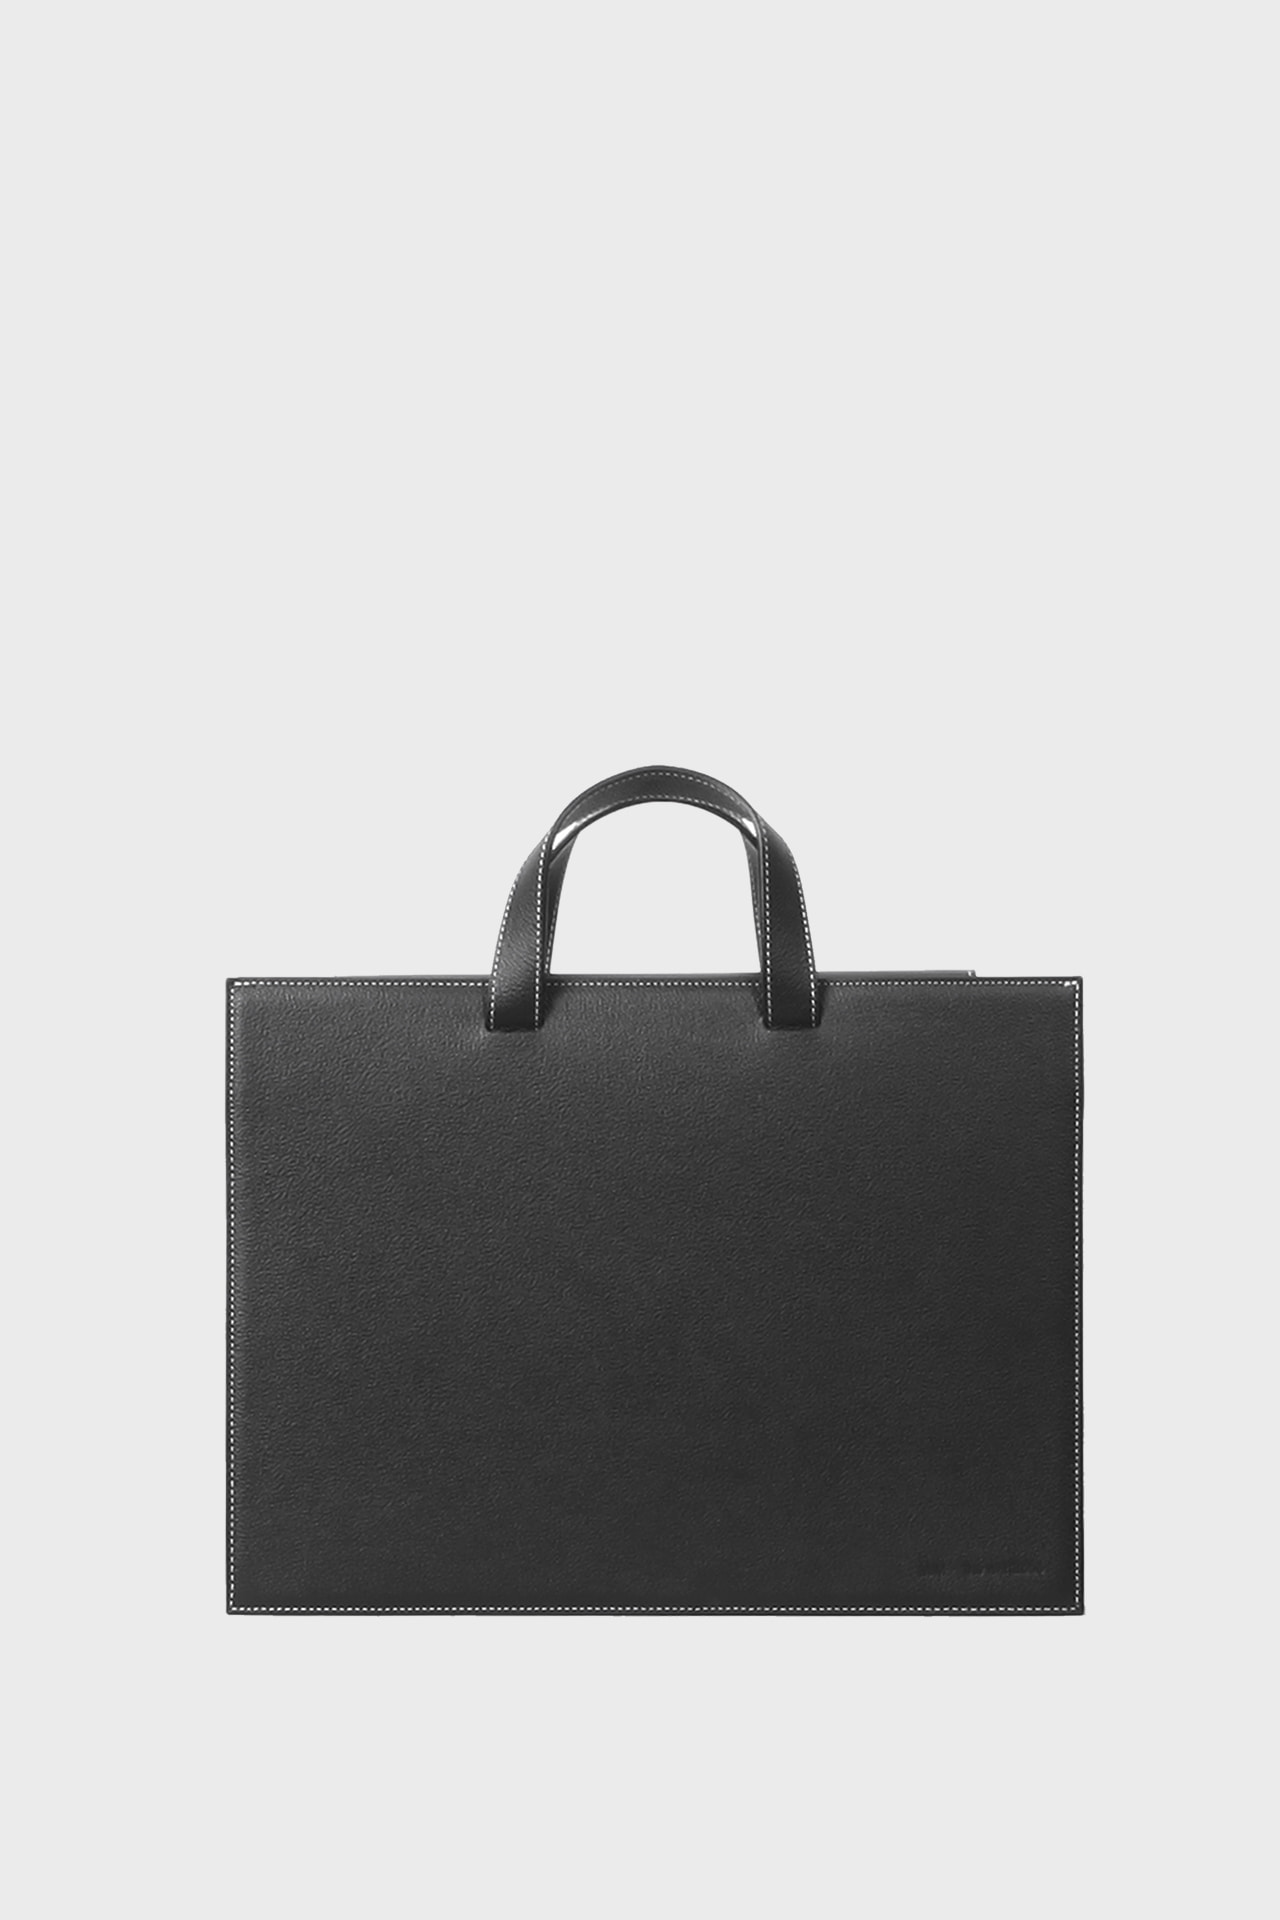 RECTANGLE Stitch Leather Cross Tote Bag